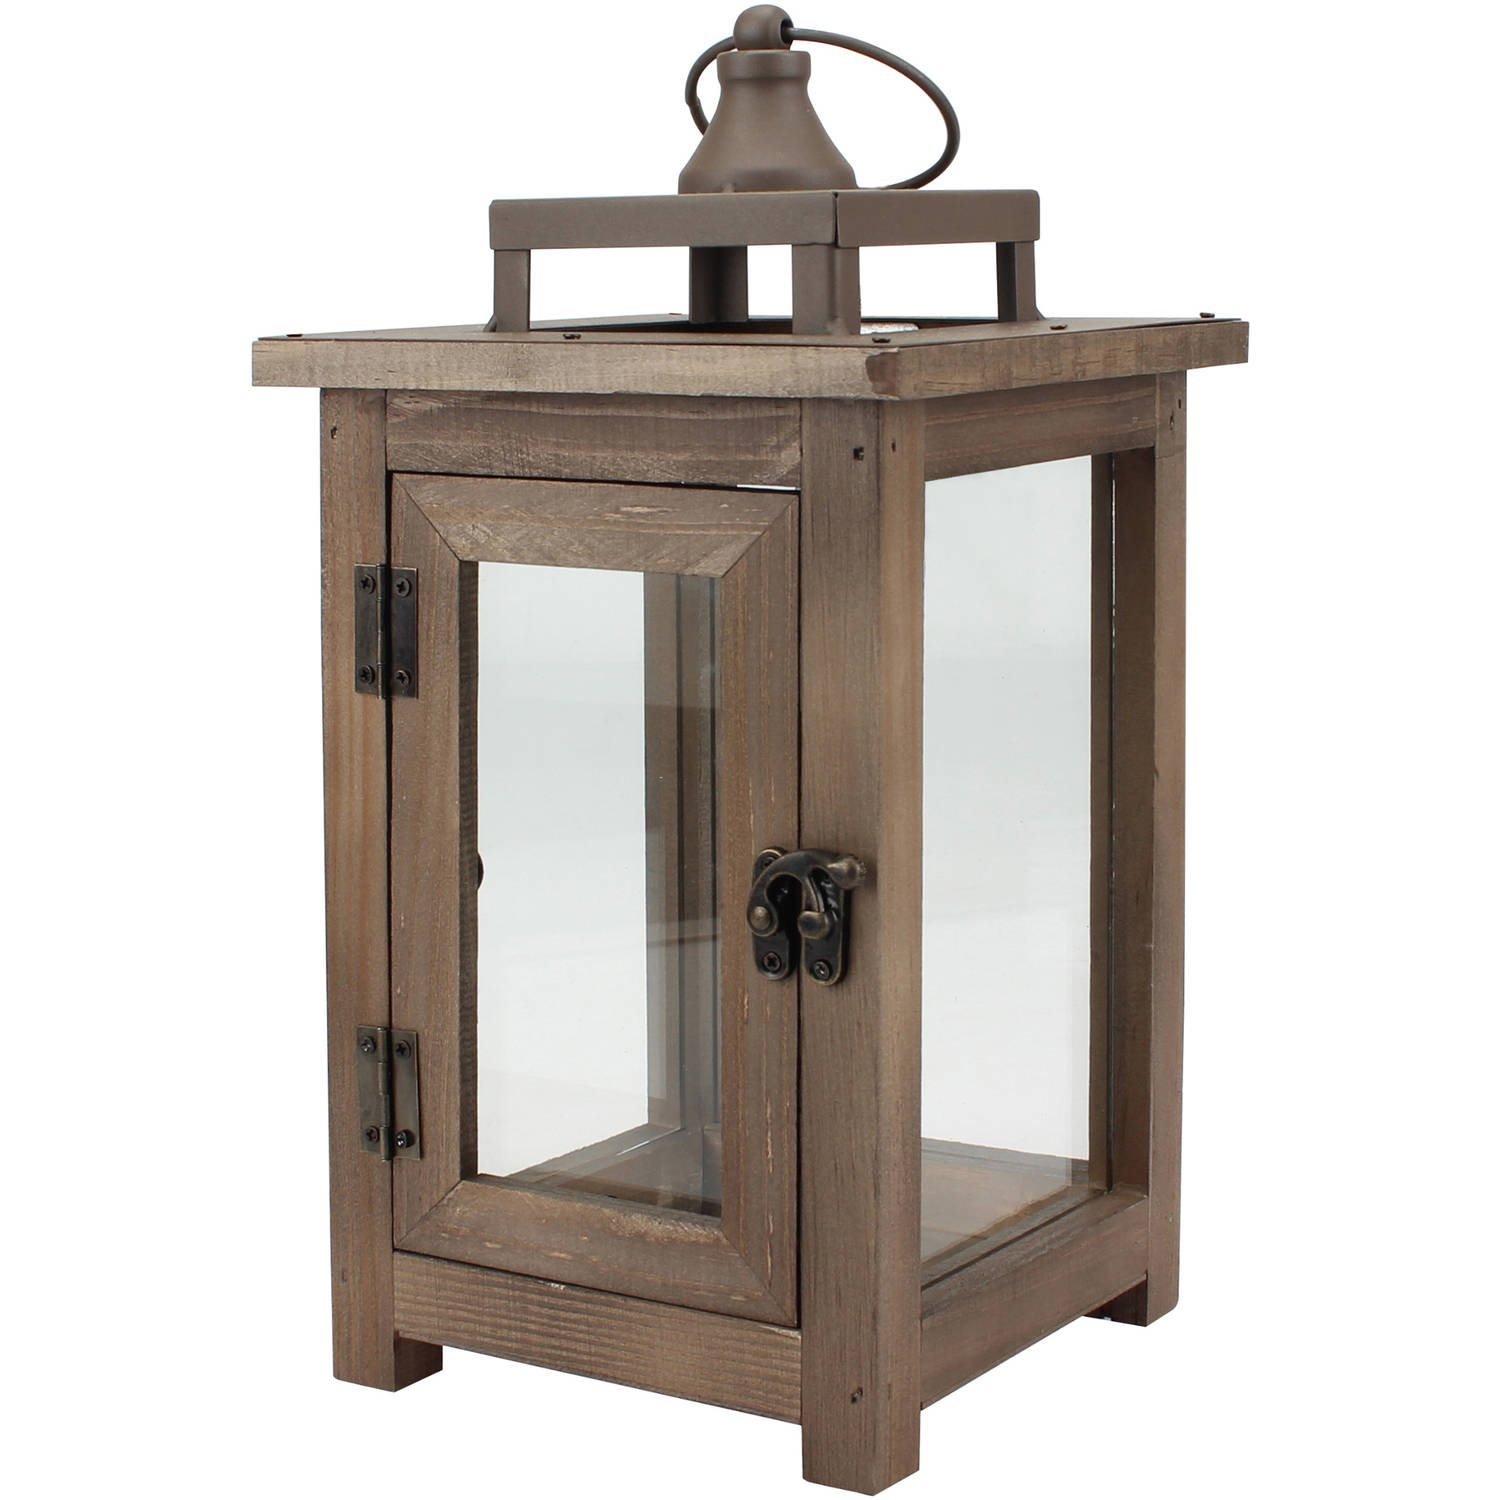 Better Homes and Gardens Medium Lantern, Farmhouse Rustic Finish